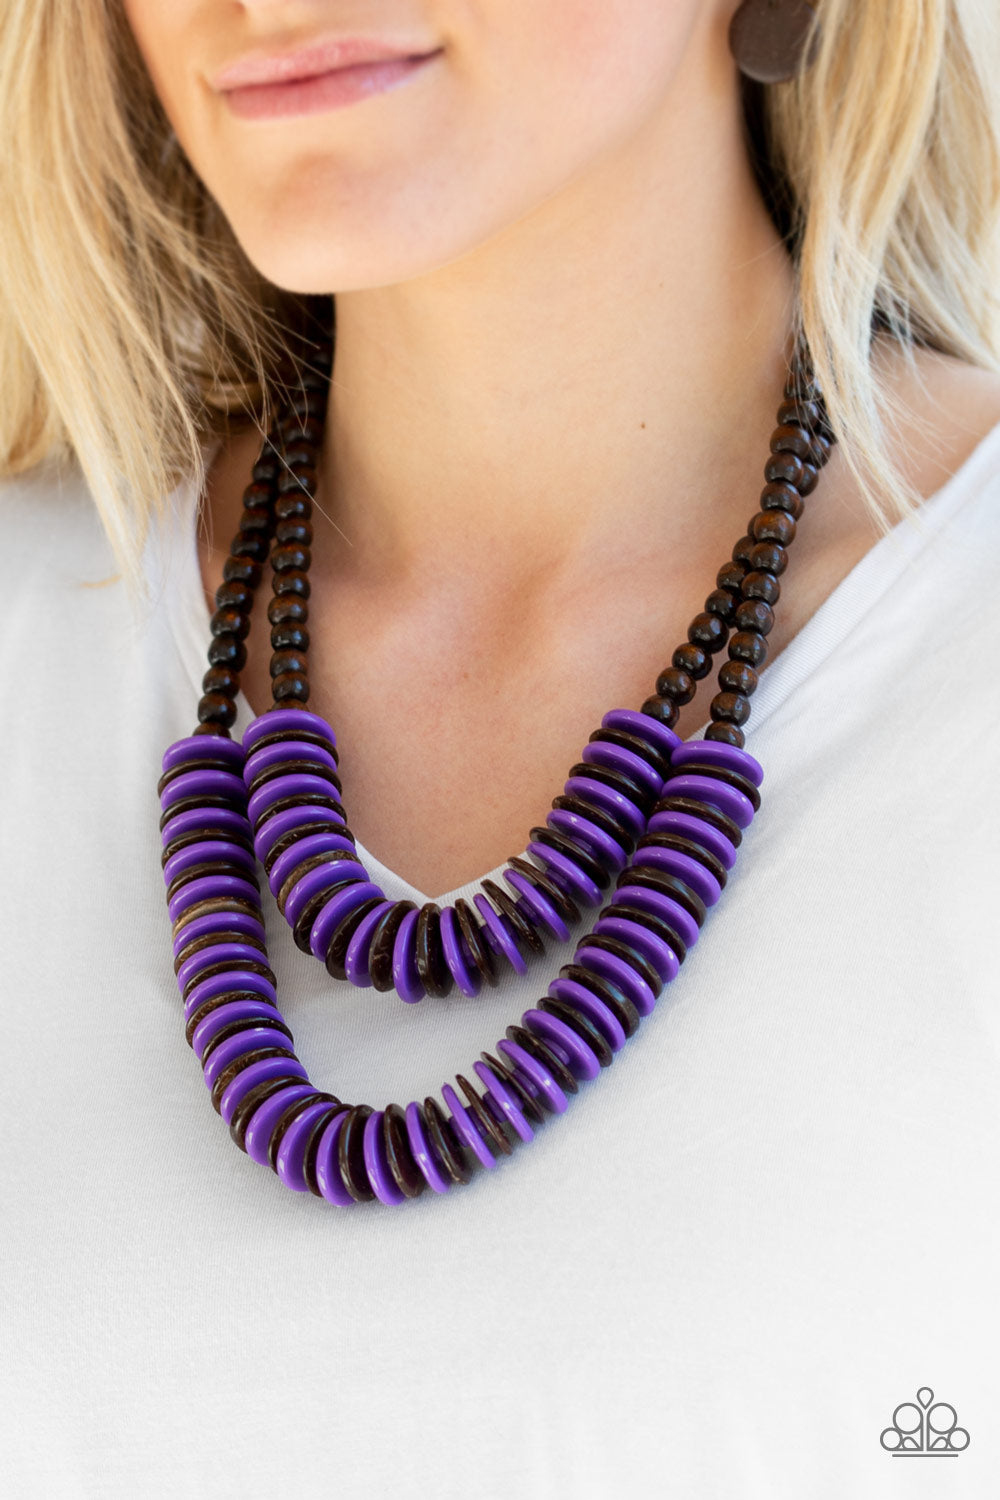 Paparazzi - Dominican Disco - Purple Wood Necklace Set - Classy Jewels by Linda